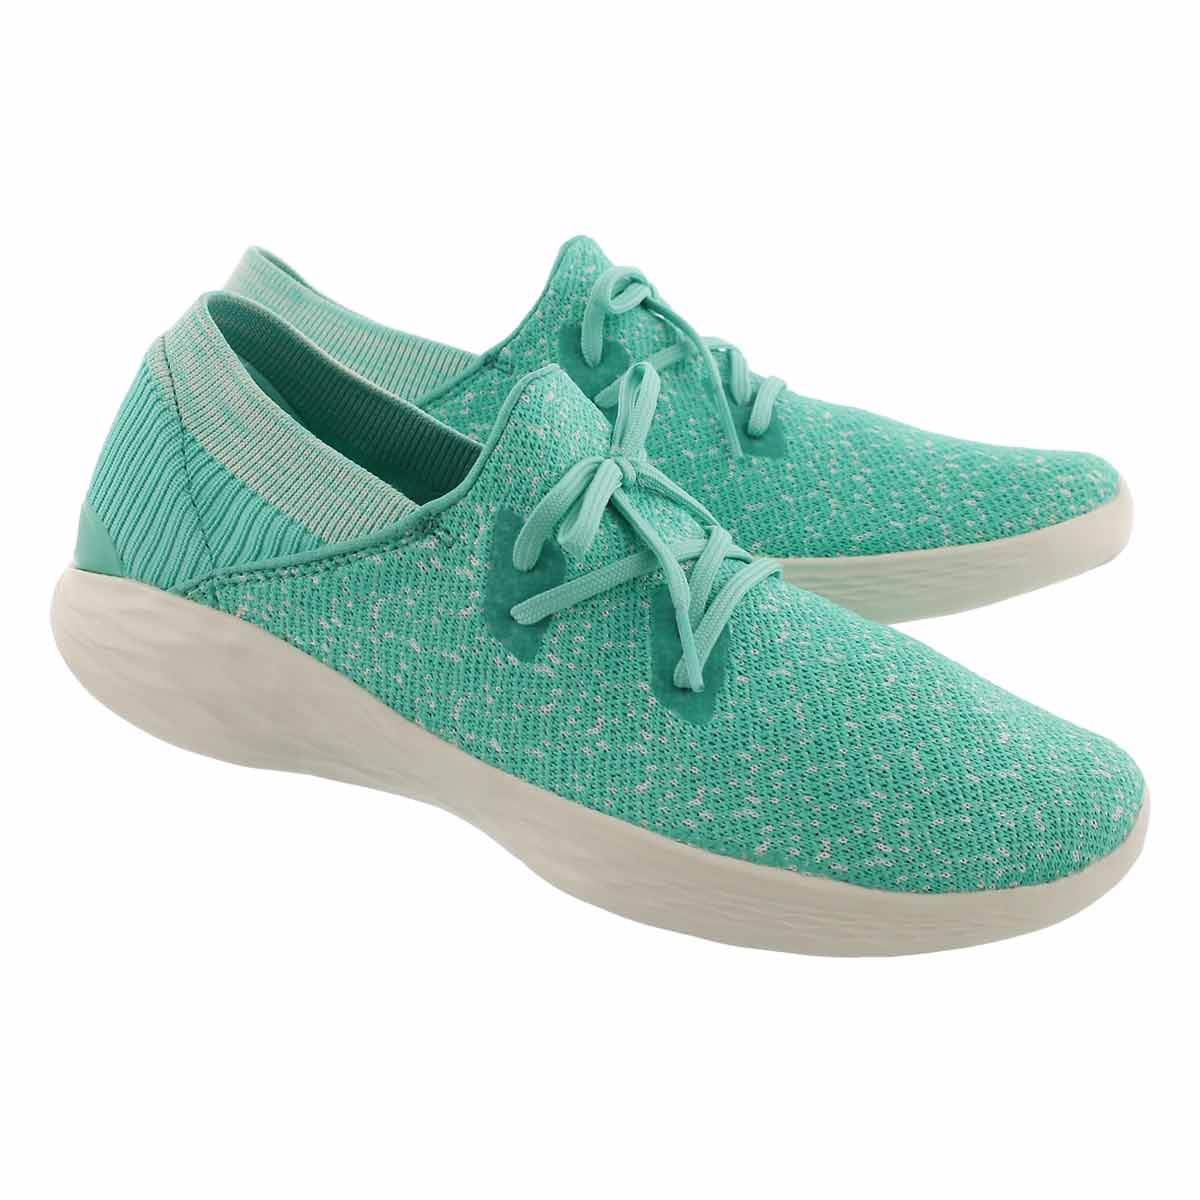 Lds You Exhale mint slip on sneaker